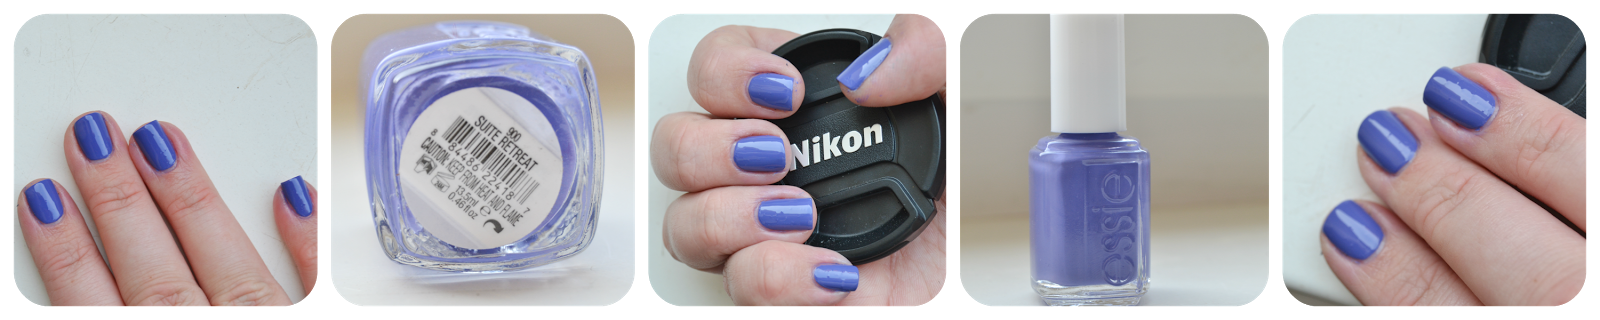 Essie Suit Retreat Nagellack Nailpolish Nailvarnish Naillacquer Swatch Review